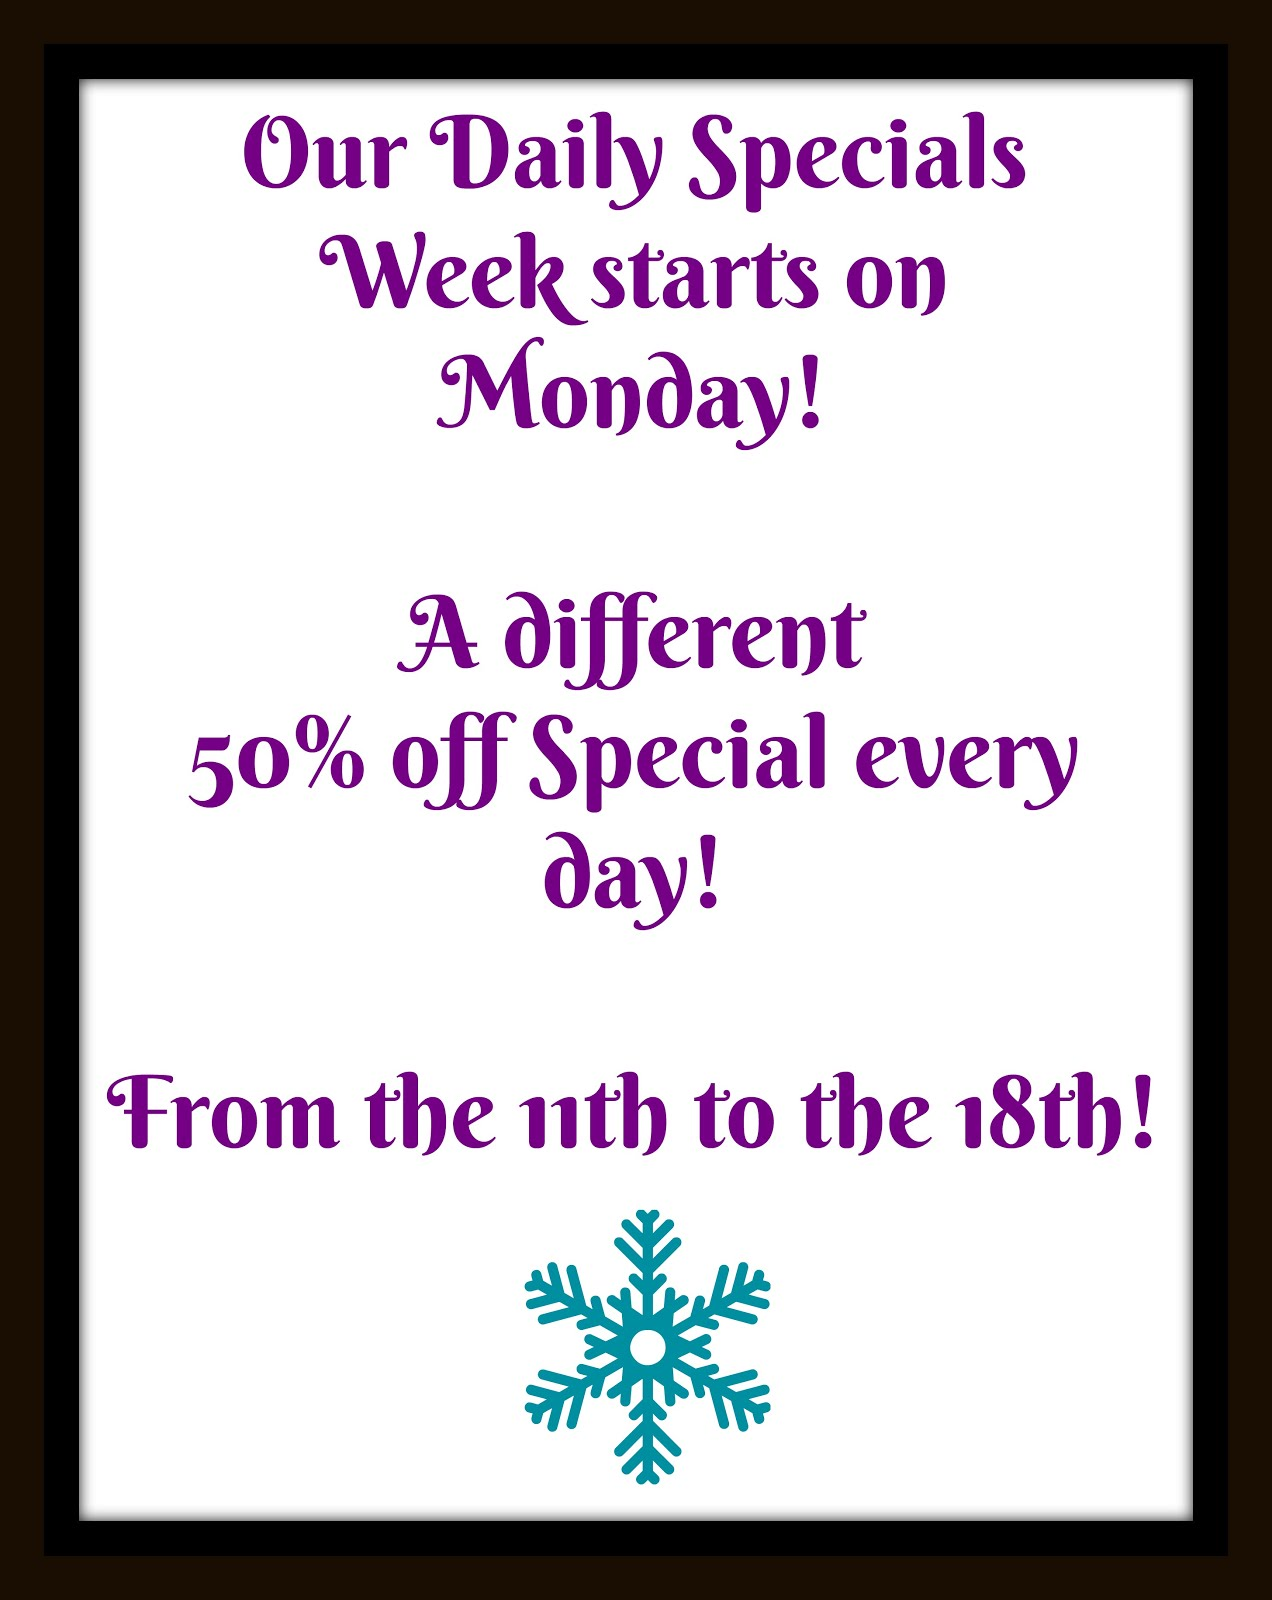 The Daily Specials Week!